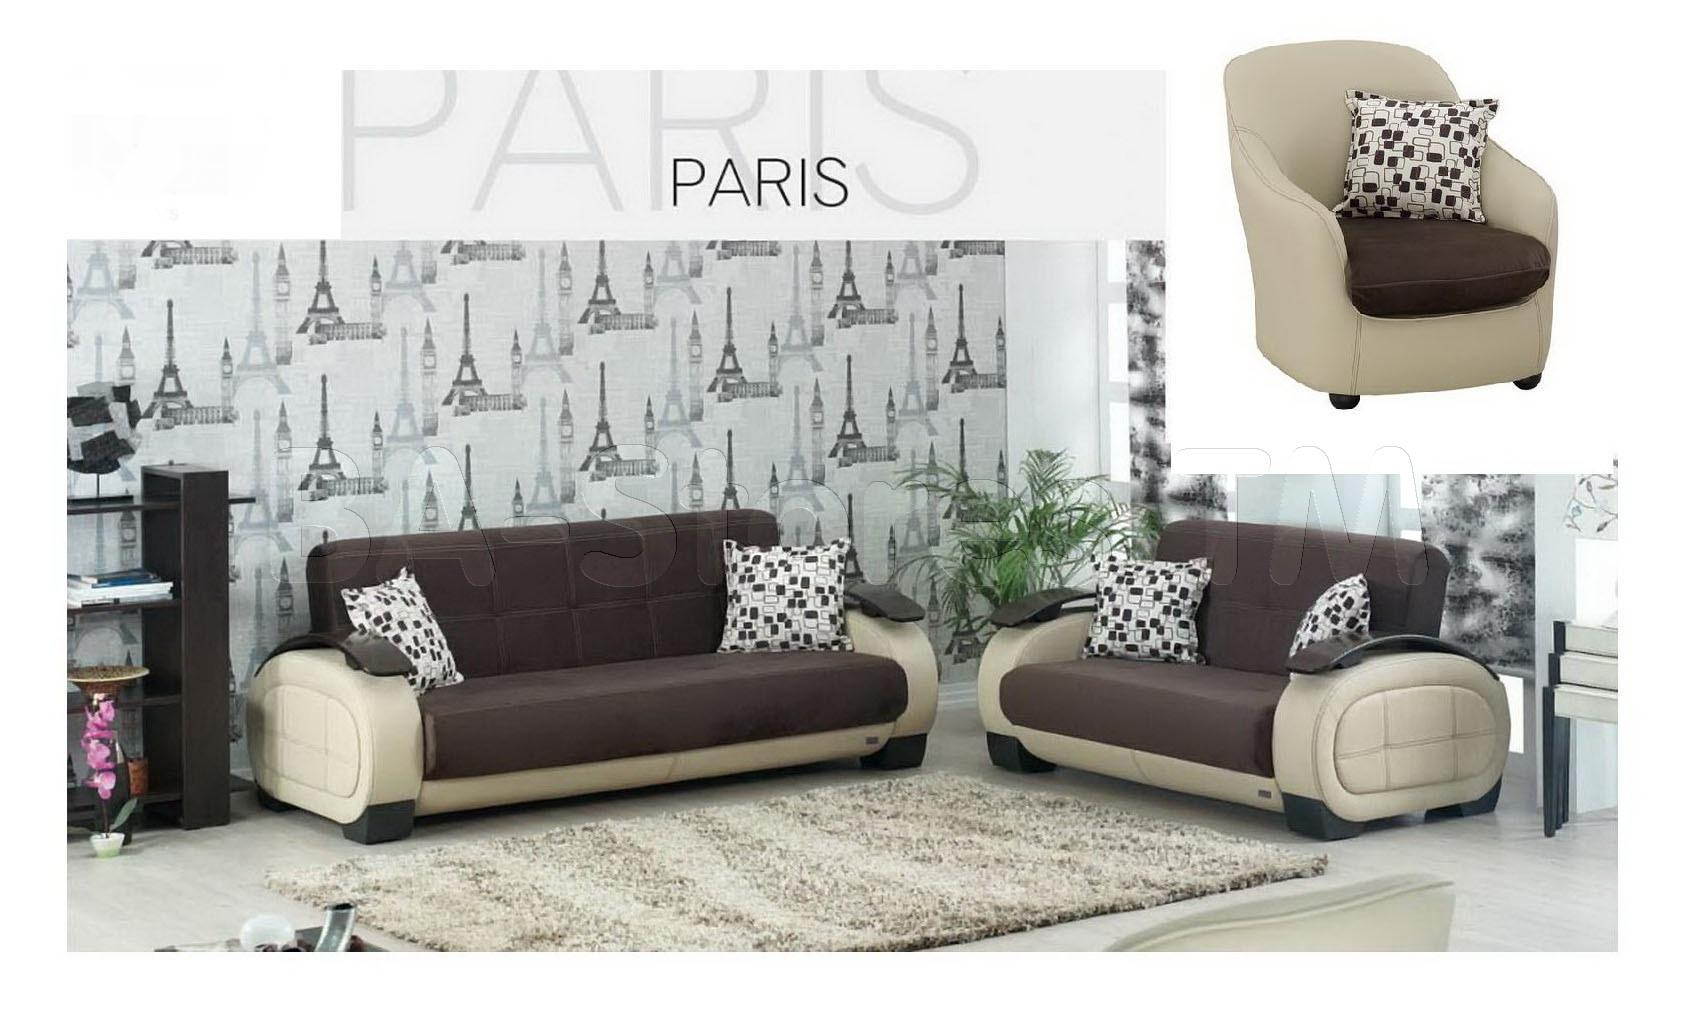 Sofas Center : Antique Sofa And Chair Set Craigslistbroyhill With Regard To Sofa And Chair Set (Image 18 of 20)